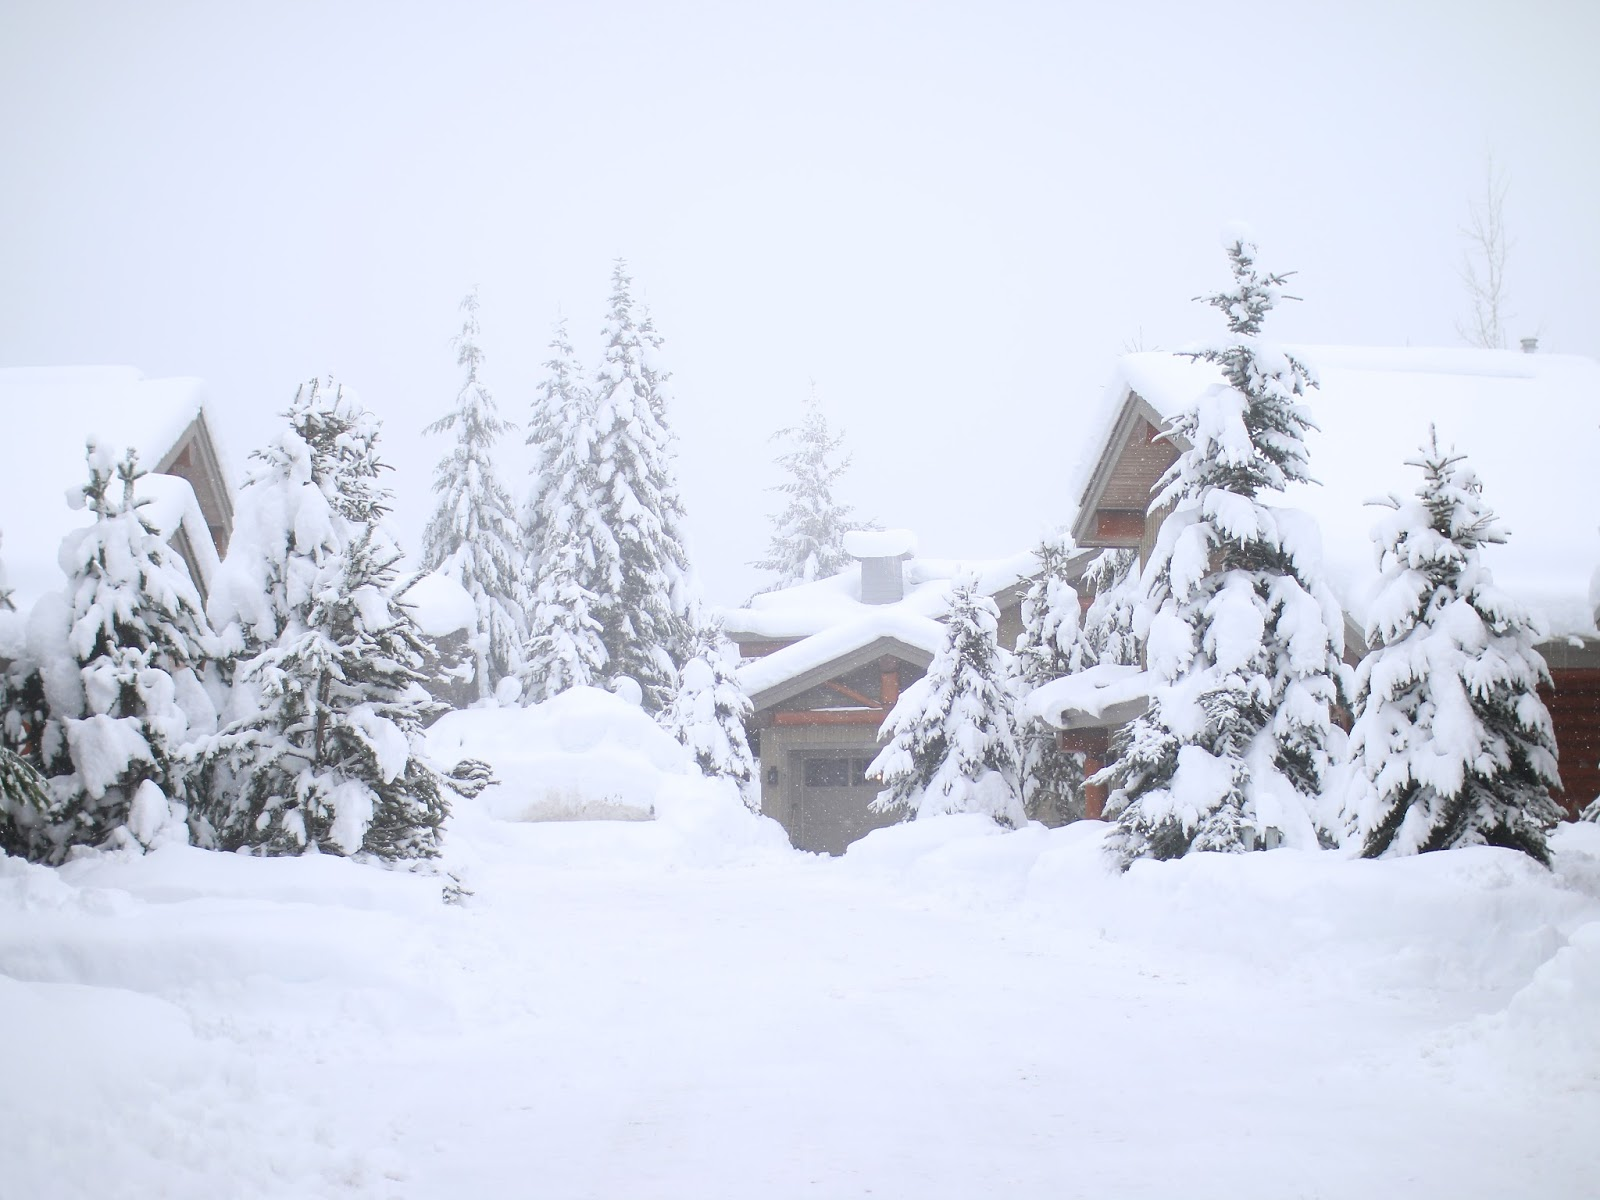 a picturesque winter scene photo from whistler canada